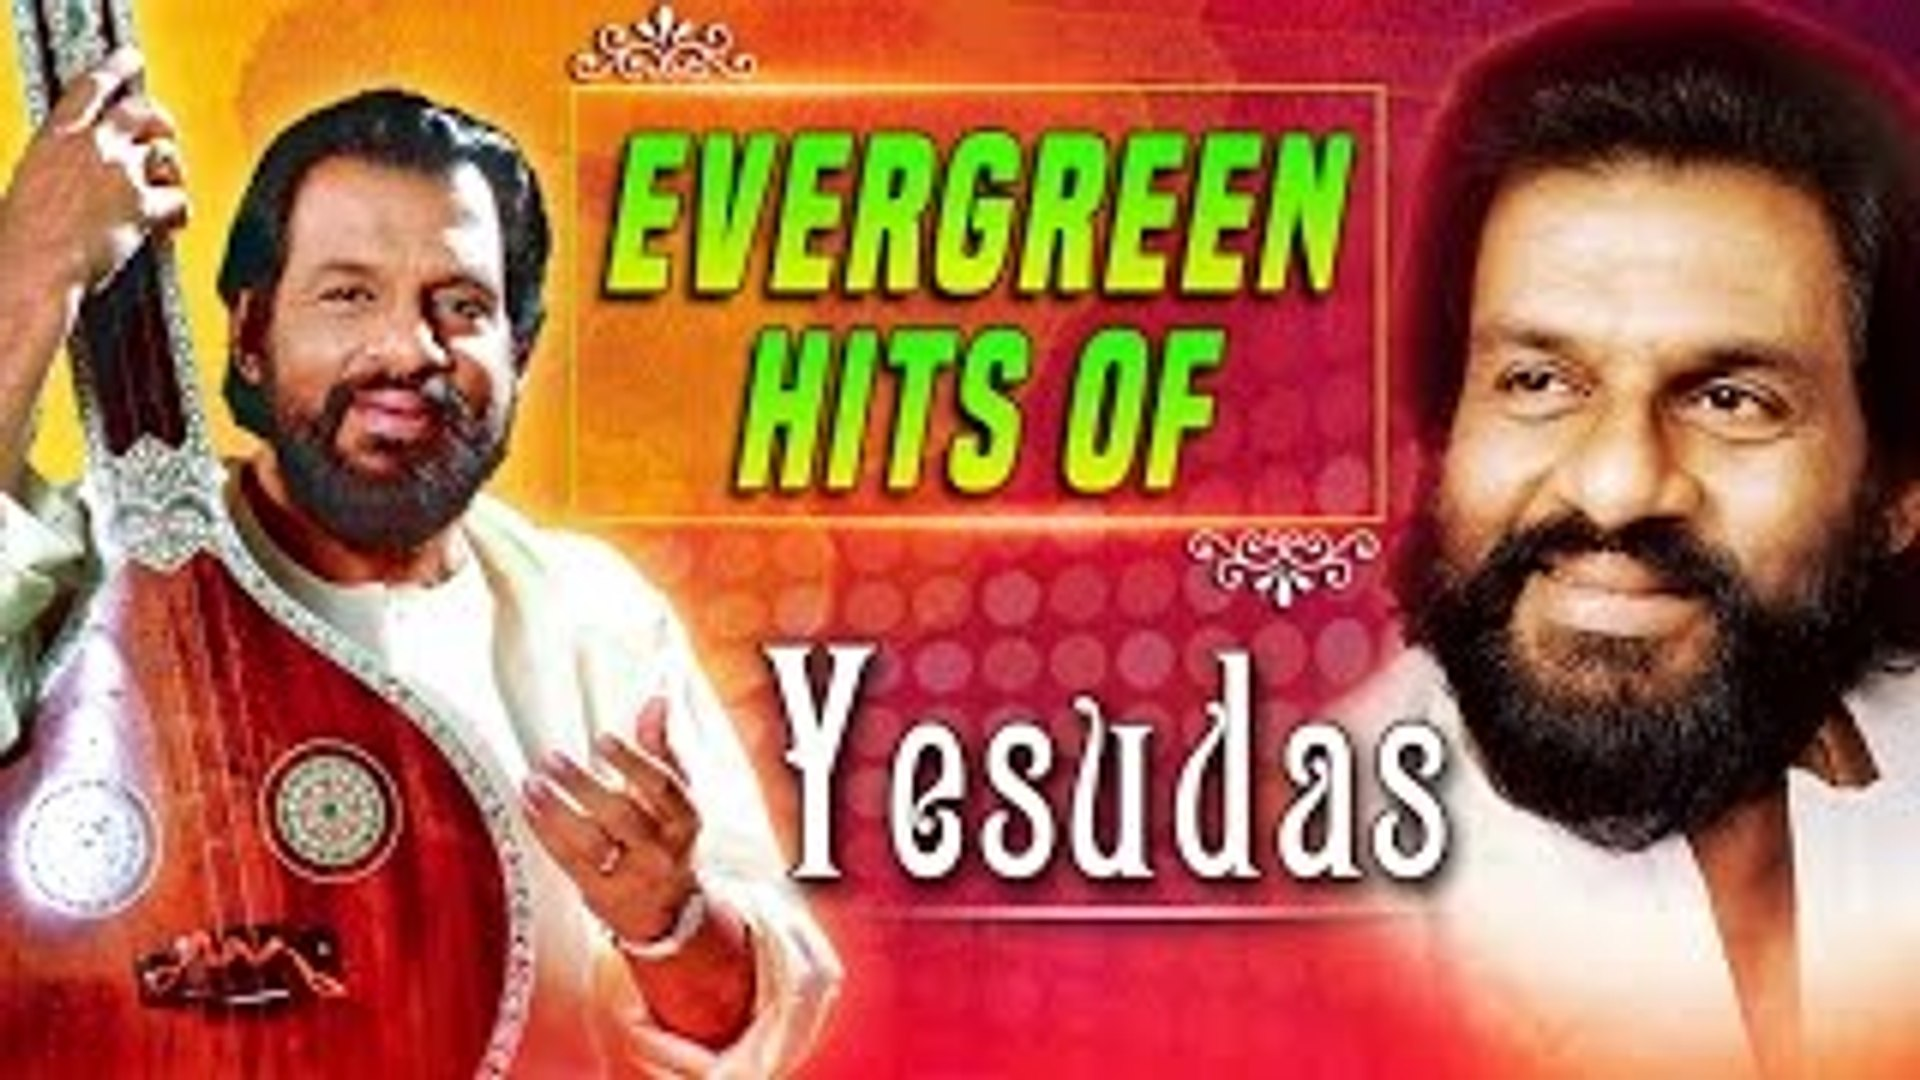 Evergreen Hit Songs Of K J Yesudas Best Of Bollywood Old Hindi Song Video Dailymotion He has recorded extra than one hundred,000 songs in some of indian languages which include hindi, malayalam and tamil as well as russian, arabic, latin and english throughout a profession spanning greater than five a long time. evergreen hit songs of k j yesudas best of bollywood old hindi song